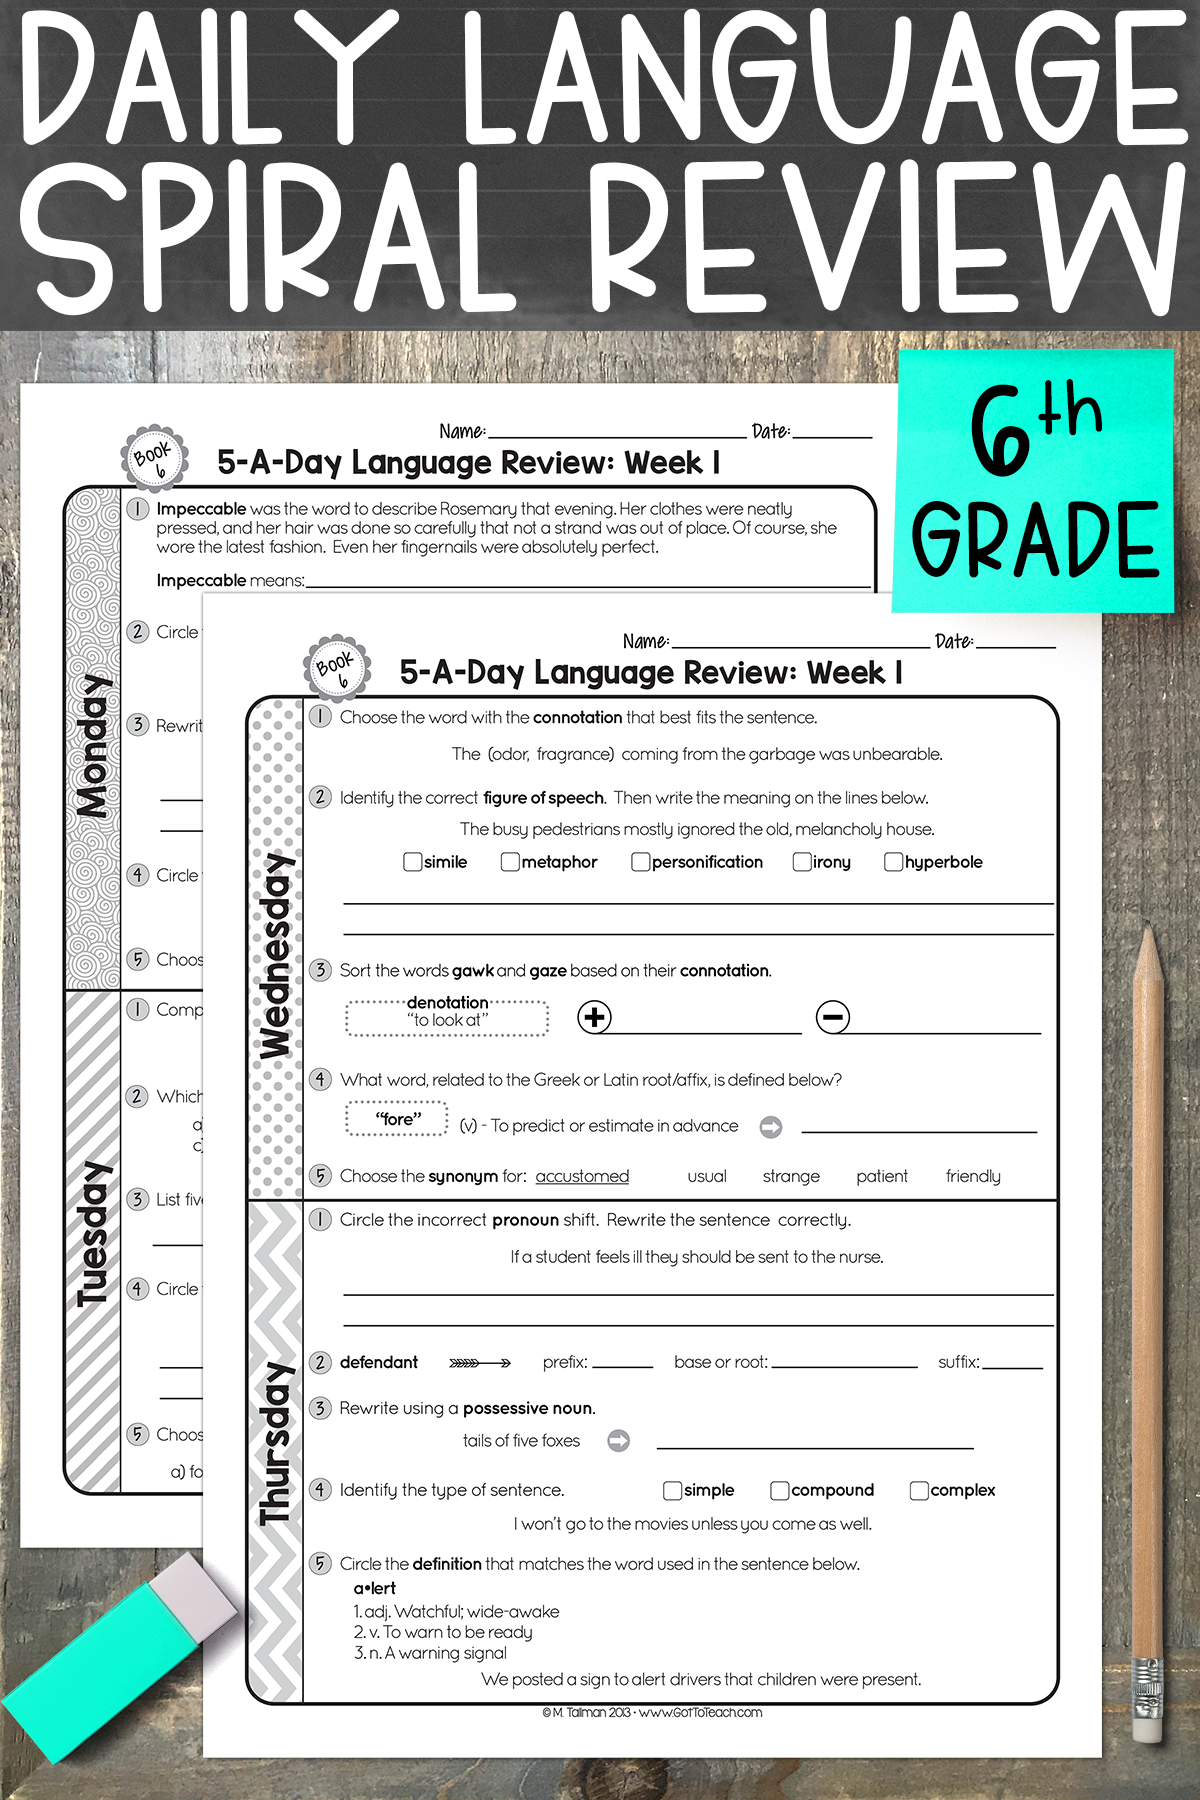 small resolution of FREE 6th Grade Daily Language Spiral Review • Teacher Thrive   Teaching 6th  grade